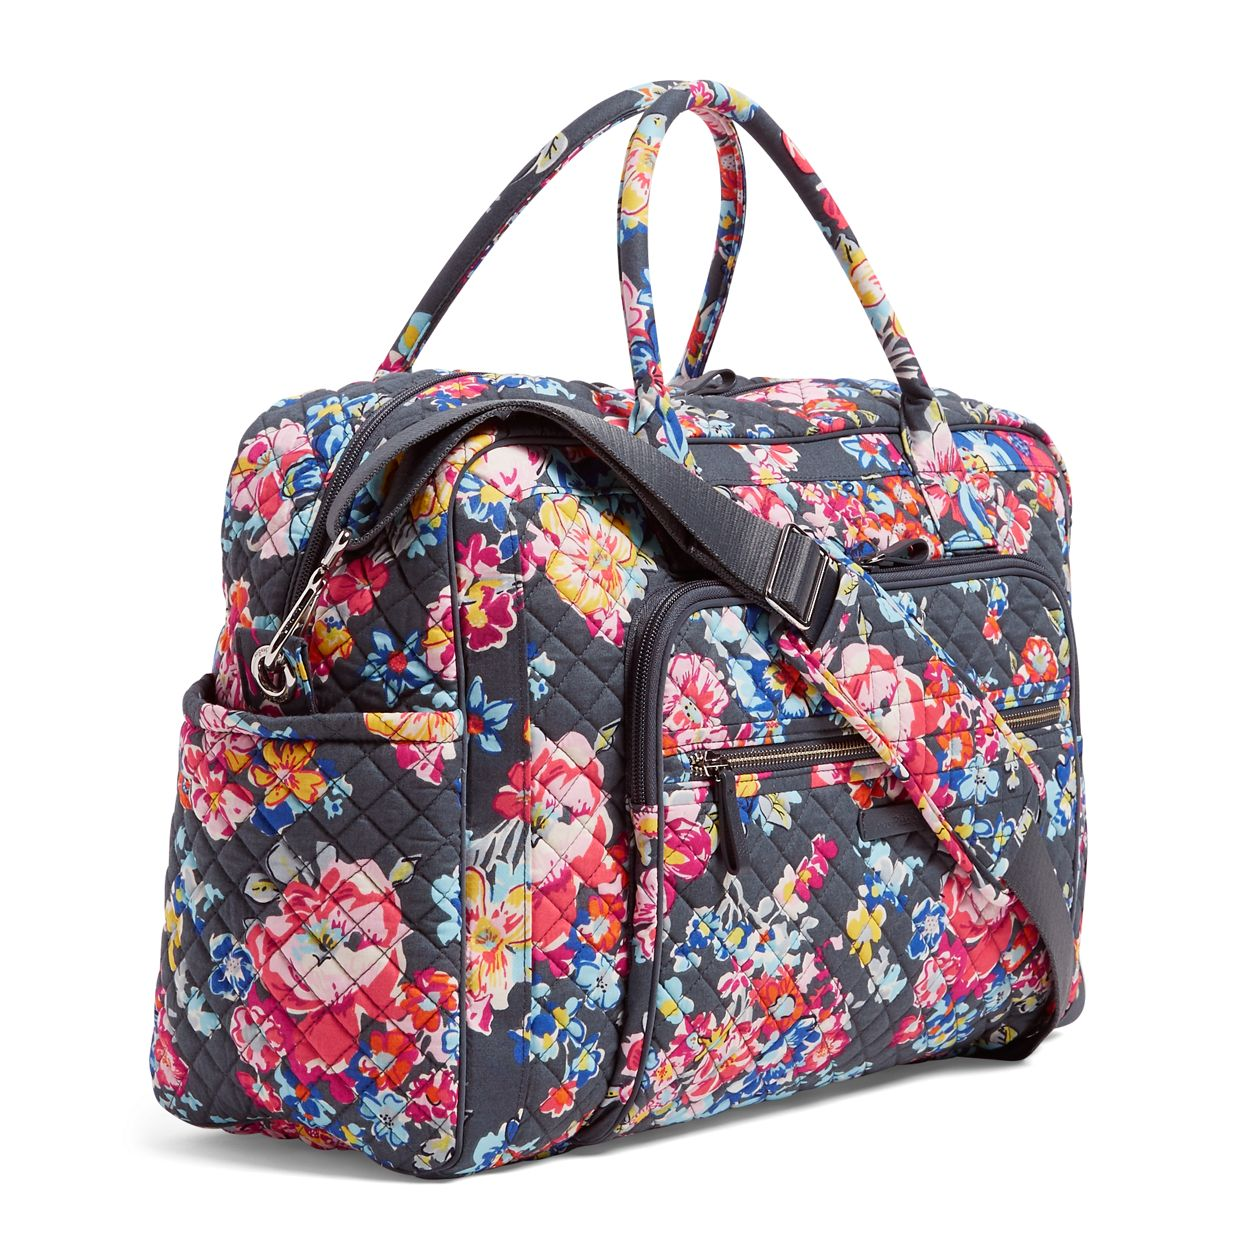 3602df5a9 Image of Iconic Weekender Travel Bag in Shore Thing